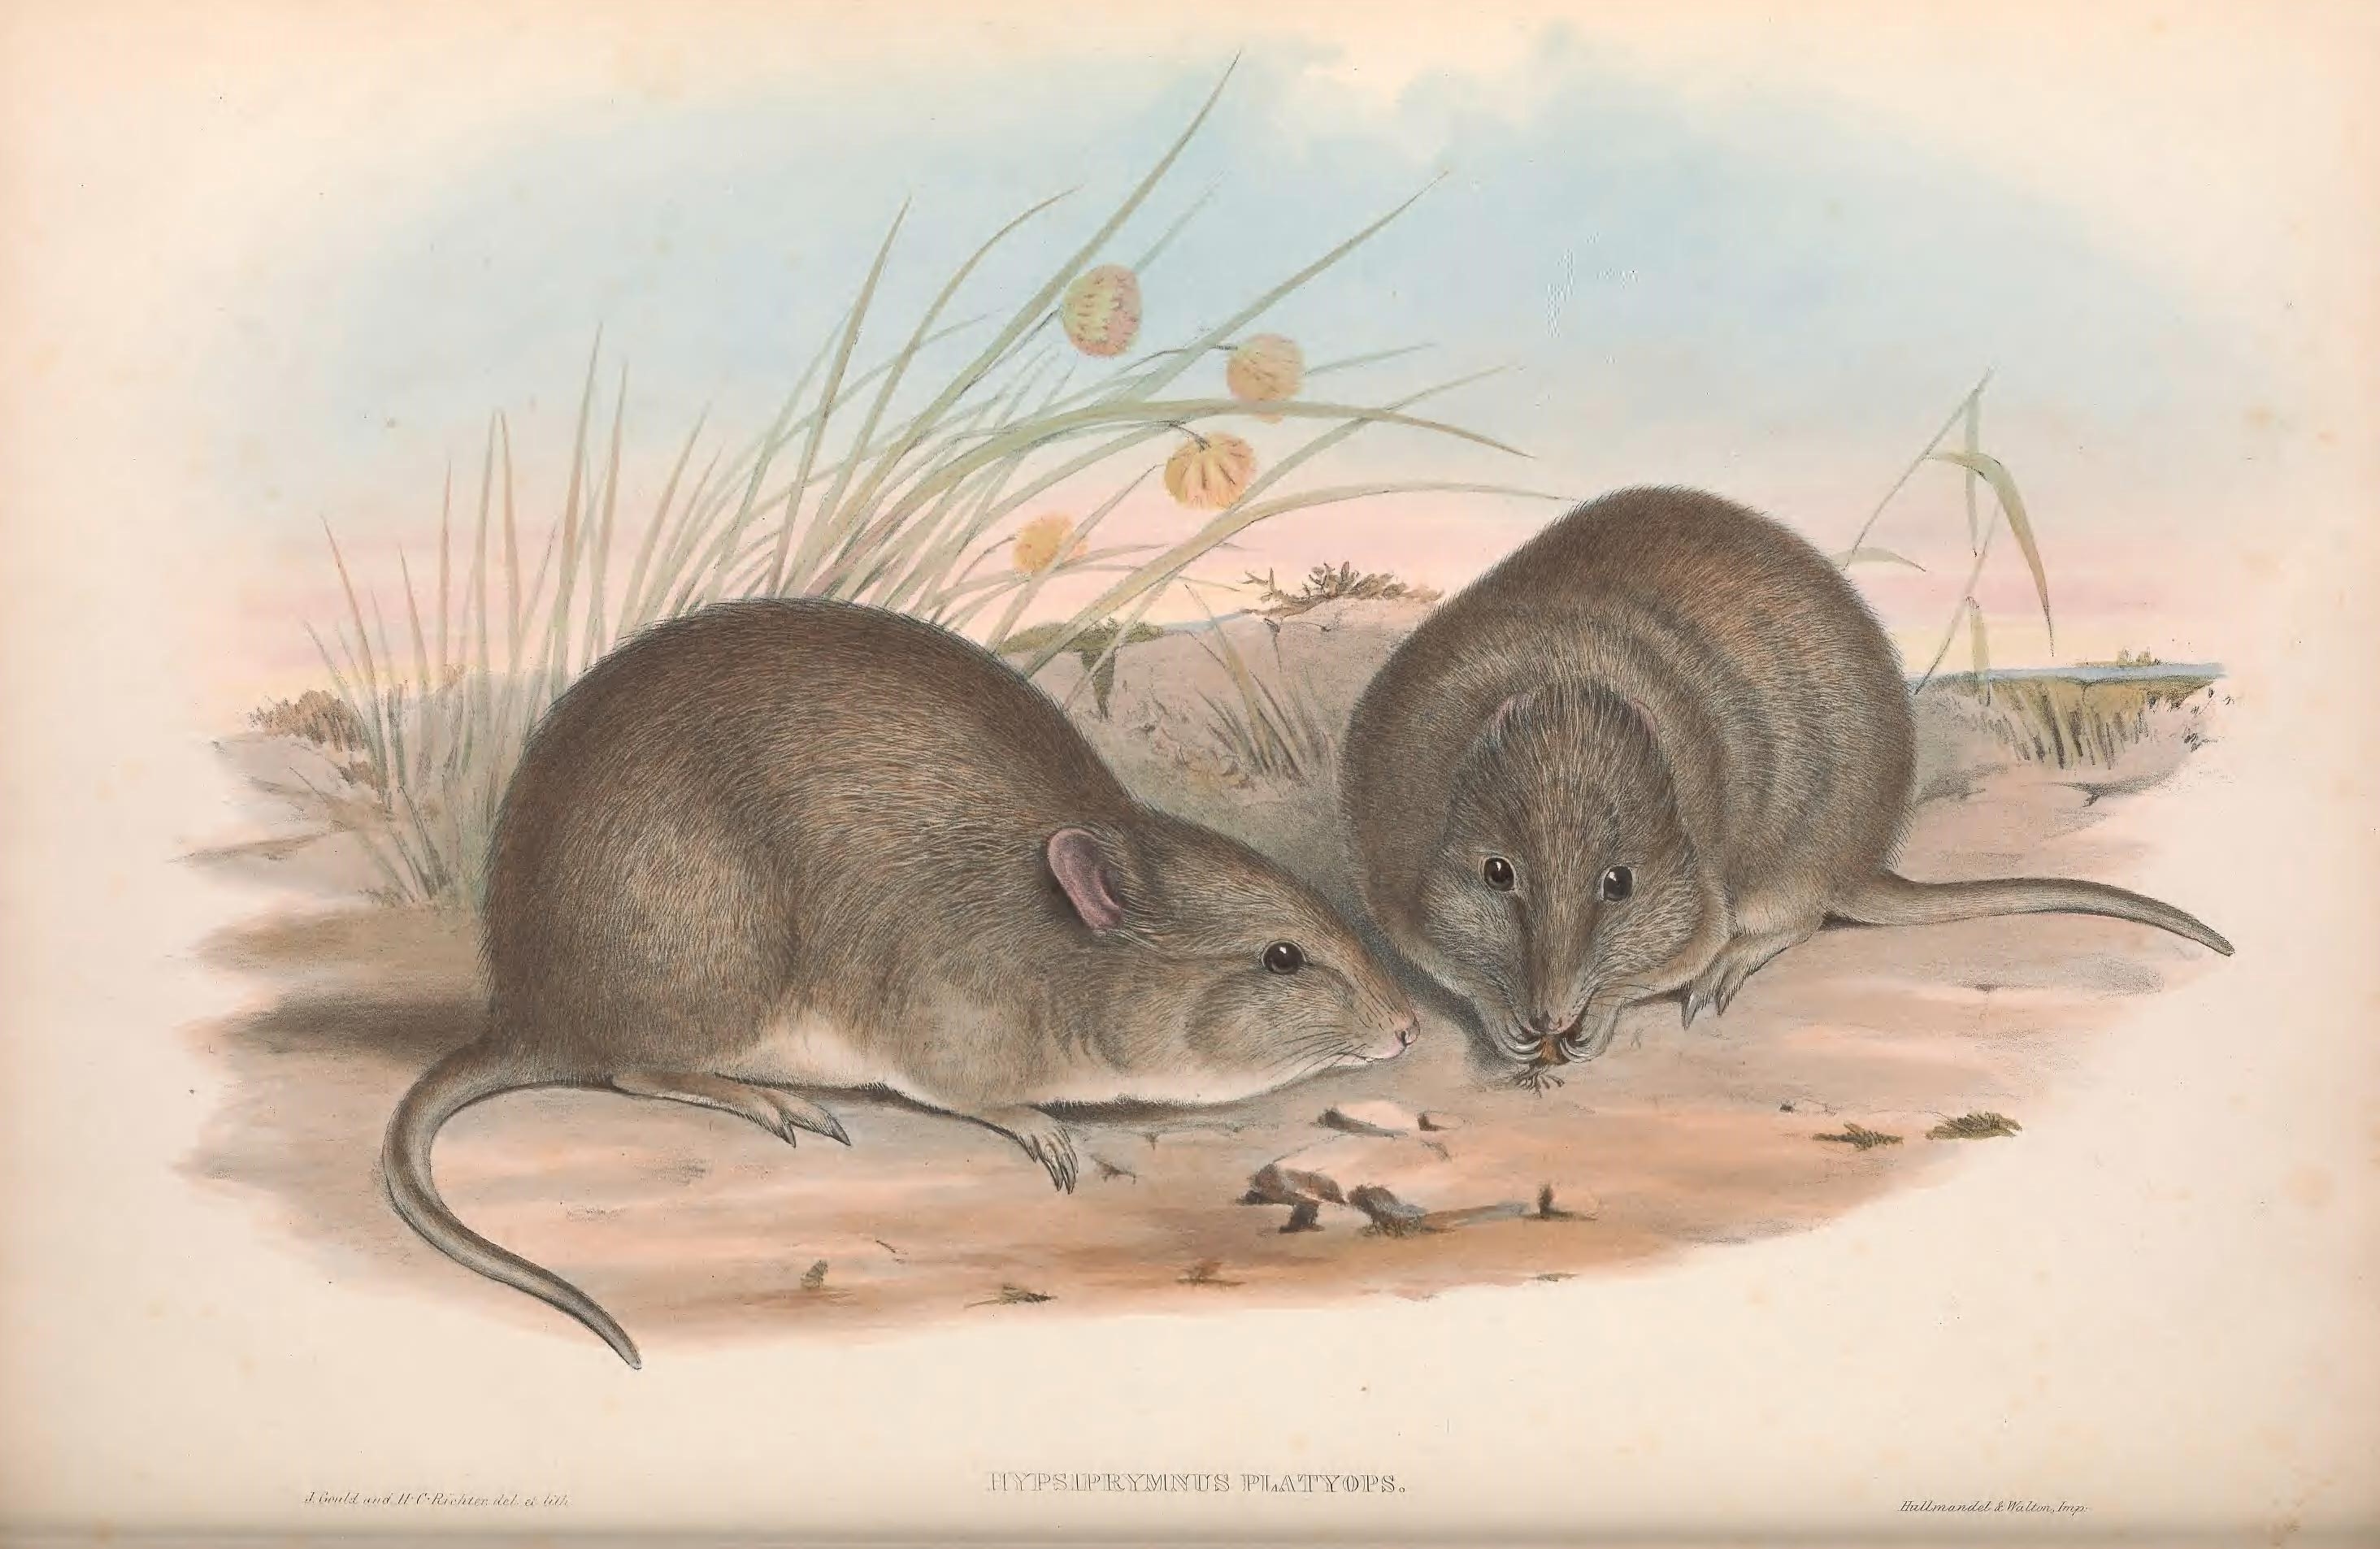 File:BroadFacedPotoroo.jpg - Wikipedia, the free encyclopedia